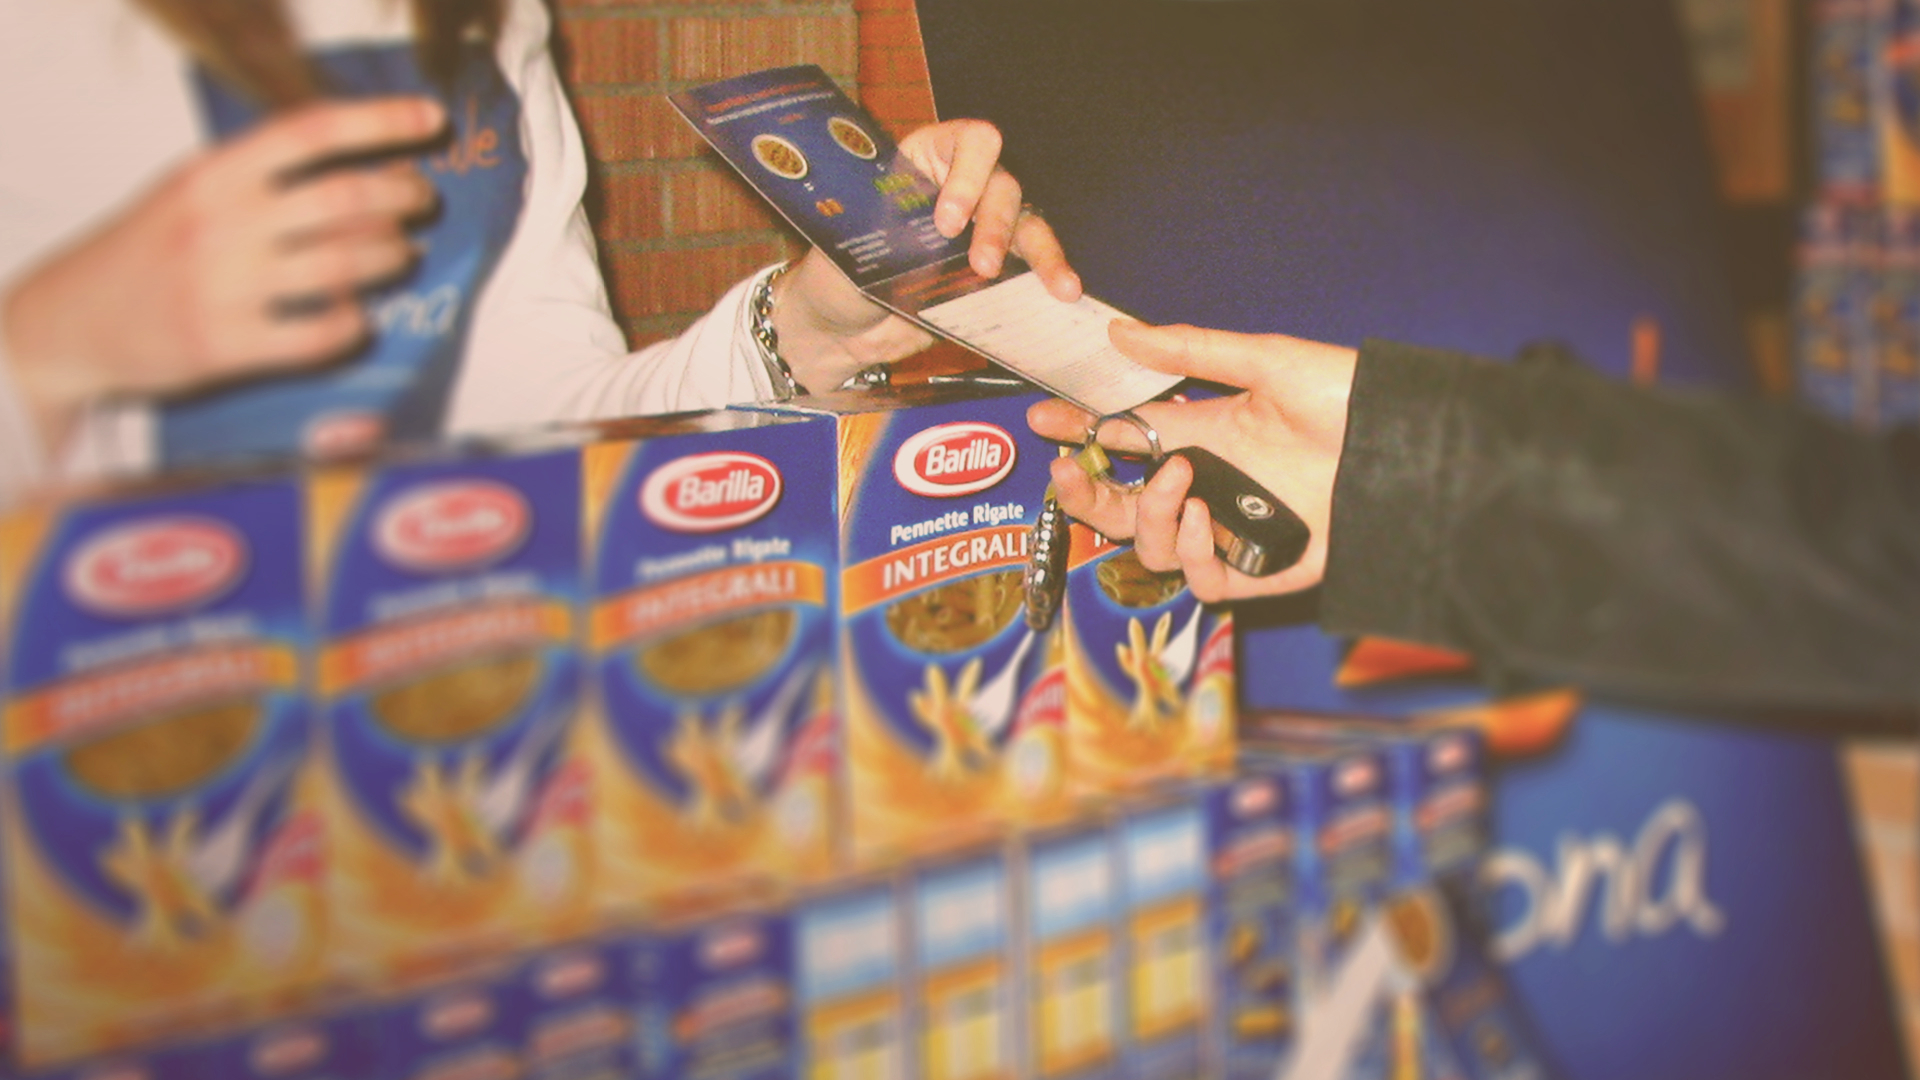 Customer engagement per Barilla